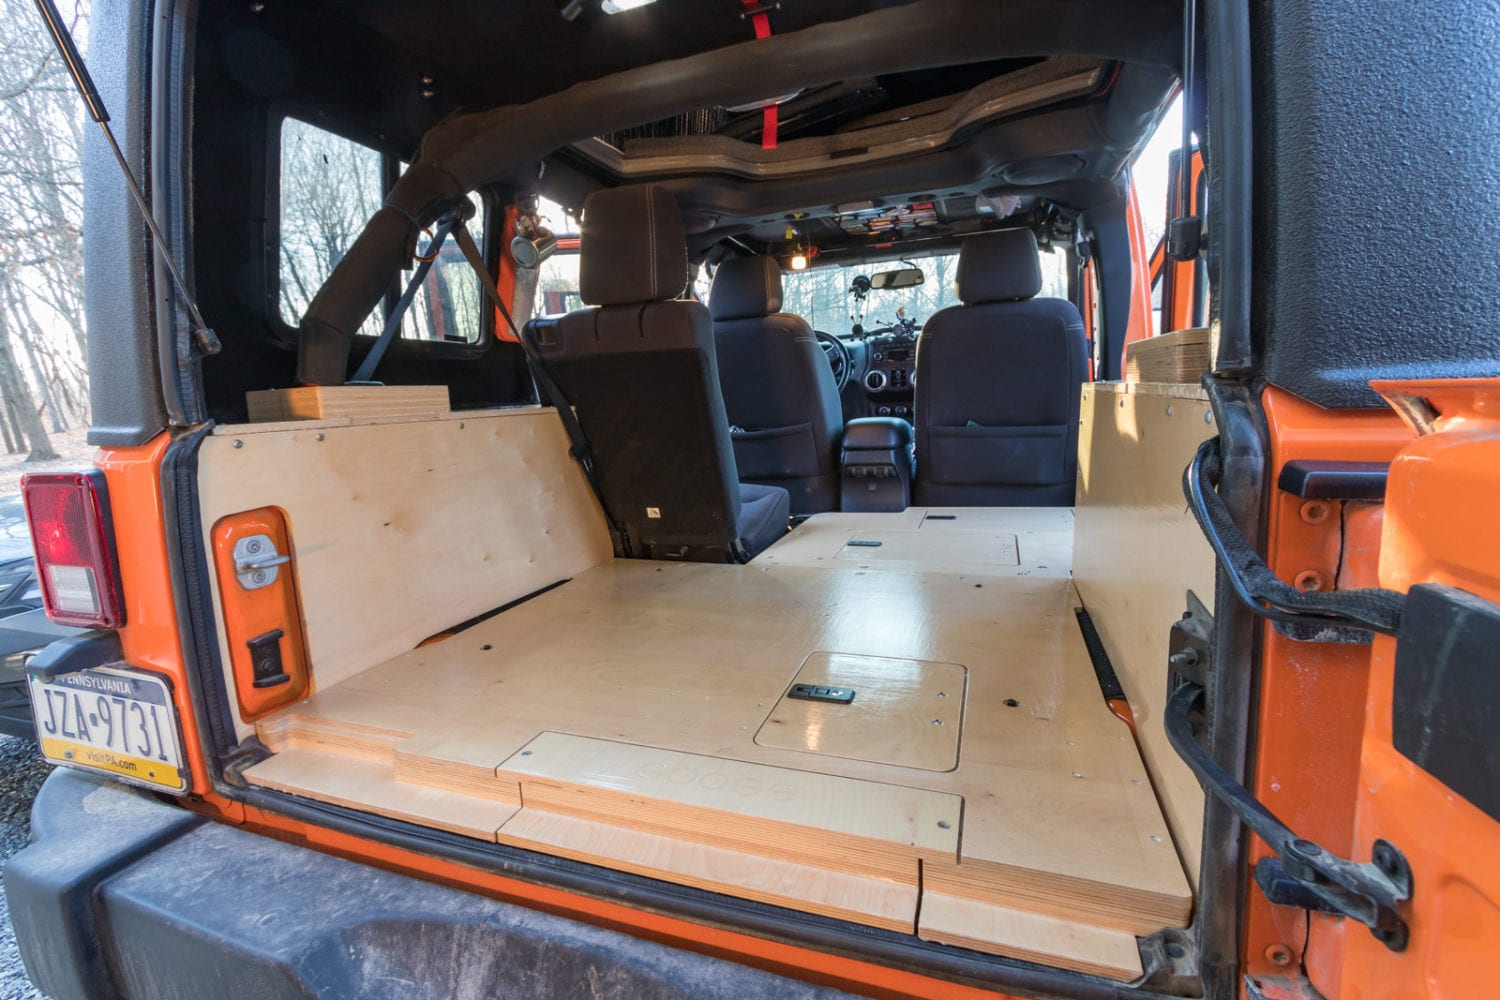 Fj Cruiser 2016 >> Along For The Ride: Goose Gear Plate System for JKU - ok4wd